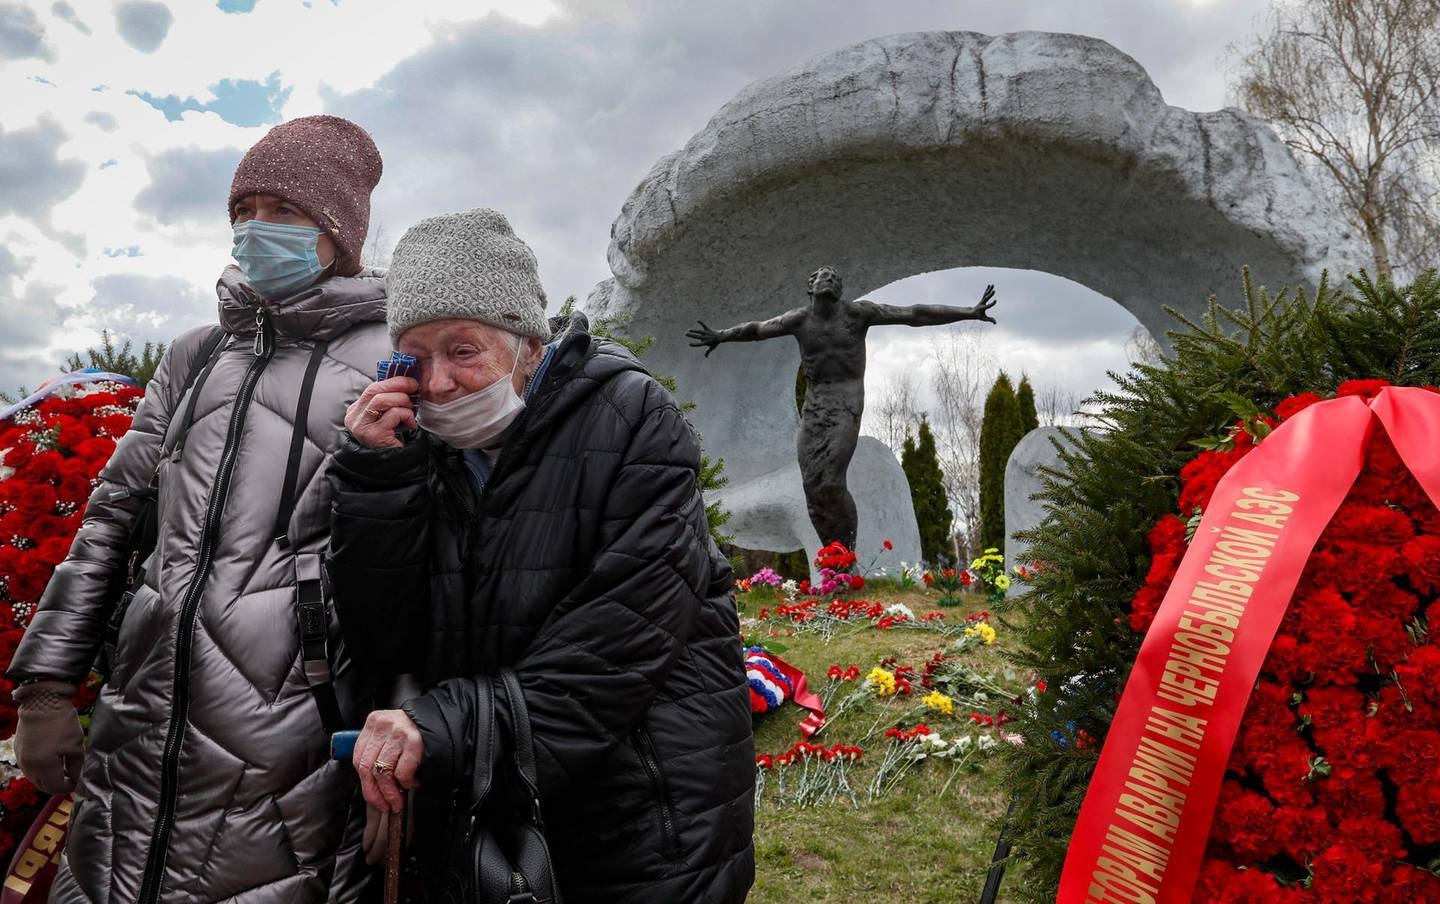 epa09161776 Women mourn near a tomb of a victim of the Chernobyl nuclear power plant disaster at the Mitino cemetery in Moscow, Russia, 26 April 2021, on the 35th anniversary of the tragedy. The explosion of reactor 4 of the Chernobyl nuclear power plant in the early hours of 26 April 1986 is still regarded as the worst nuclear disaster to date.  EPA/YURI KOCHETKOV